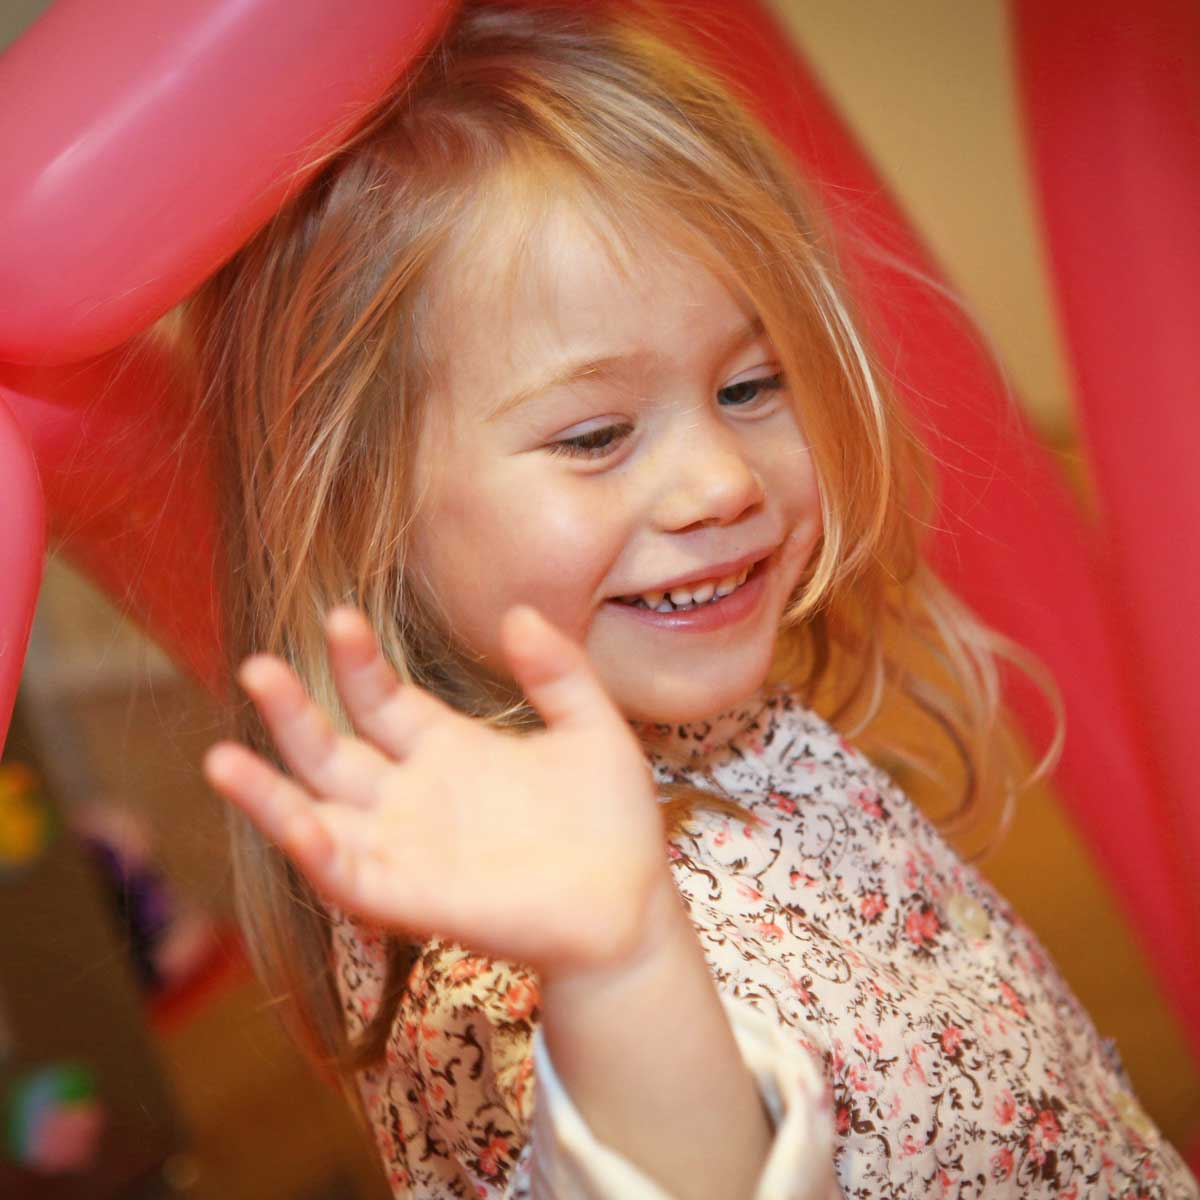 Classic children's party games #kidsparty #party #partygames #partyideas #familygamesnight #games #birthday #birthdayparty